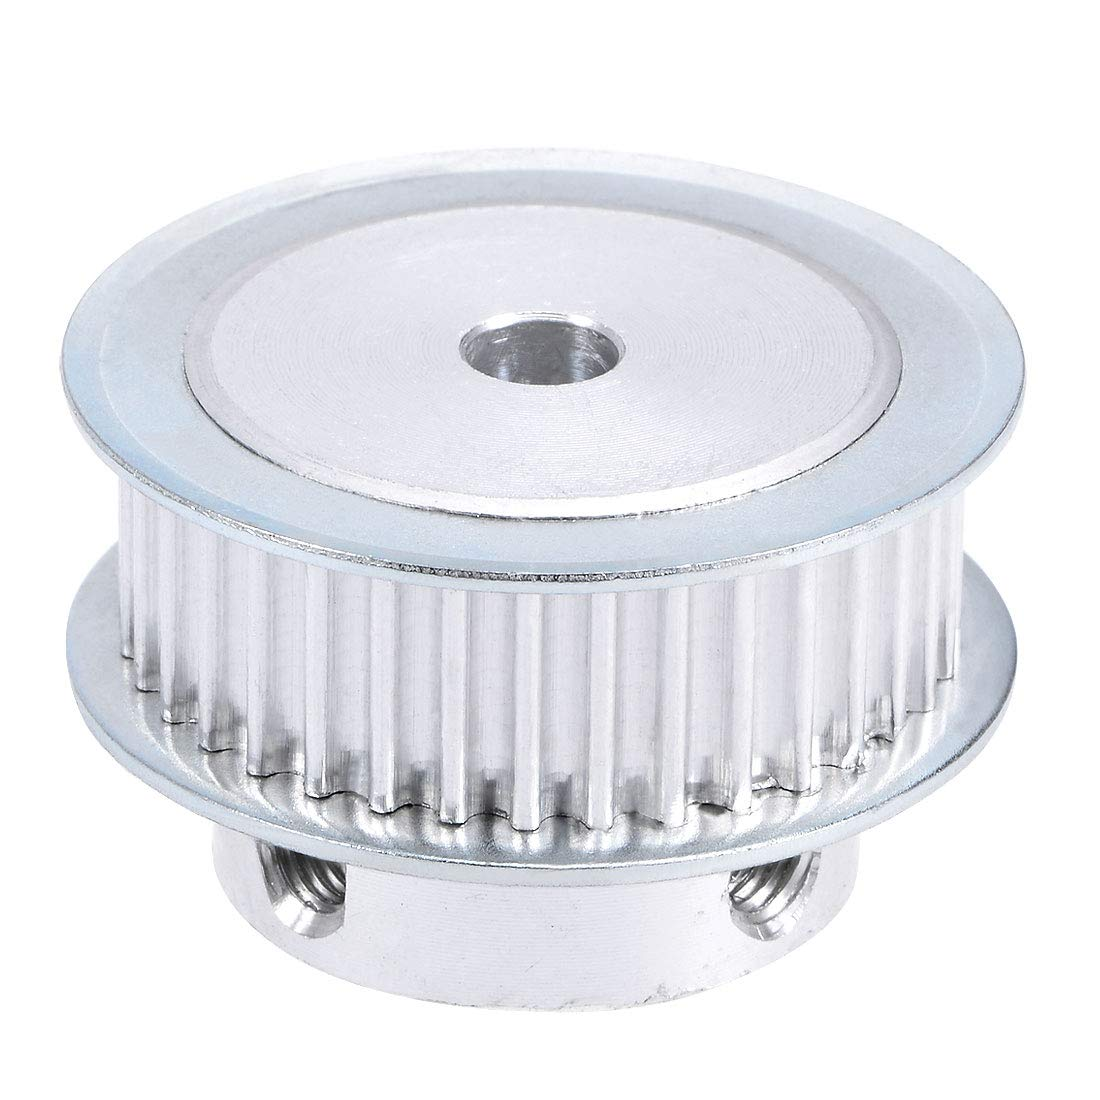 uxcell Aluminum 3M22 Teeth 5mm Bore Timing Belt Pulley Flange Synchronous Wheel for 10mm Belt 3D Printer CNC